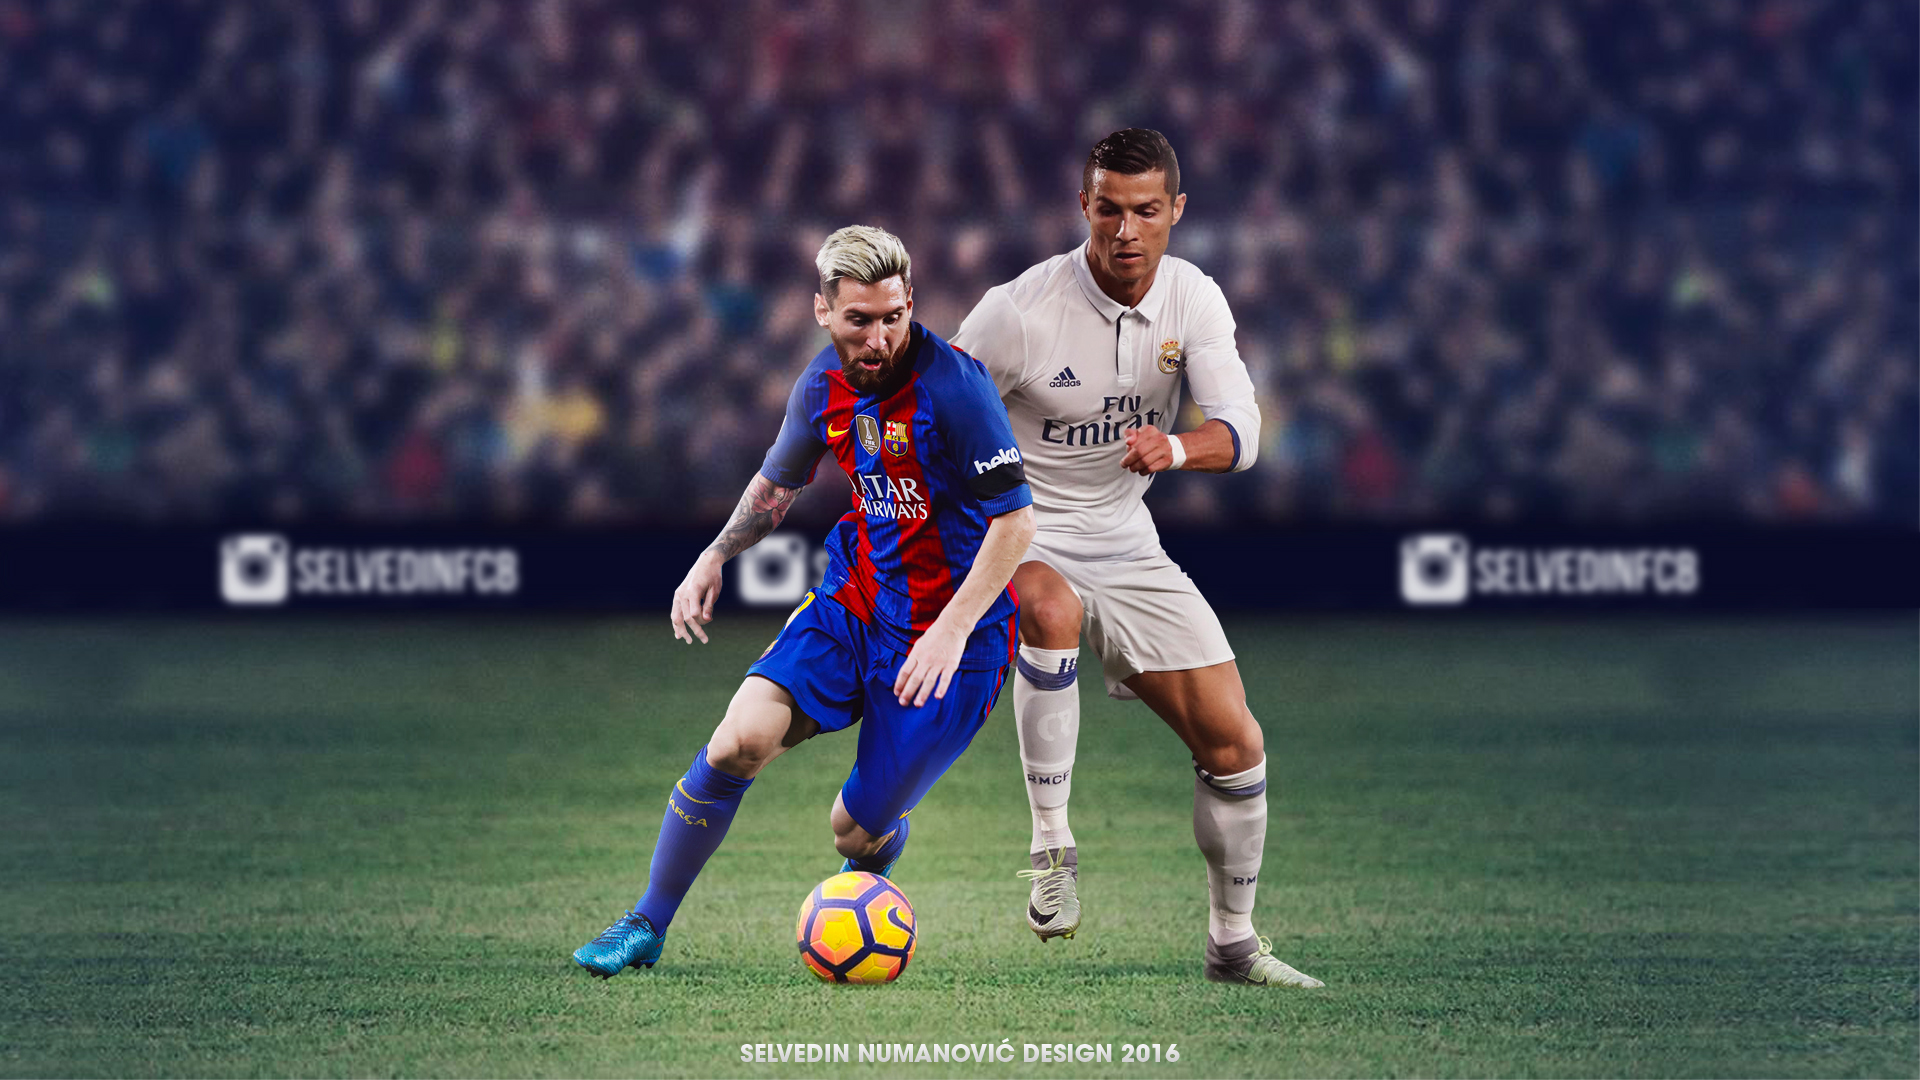 messi vs ronaldo bing images